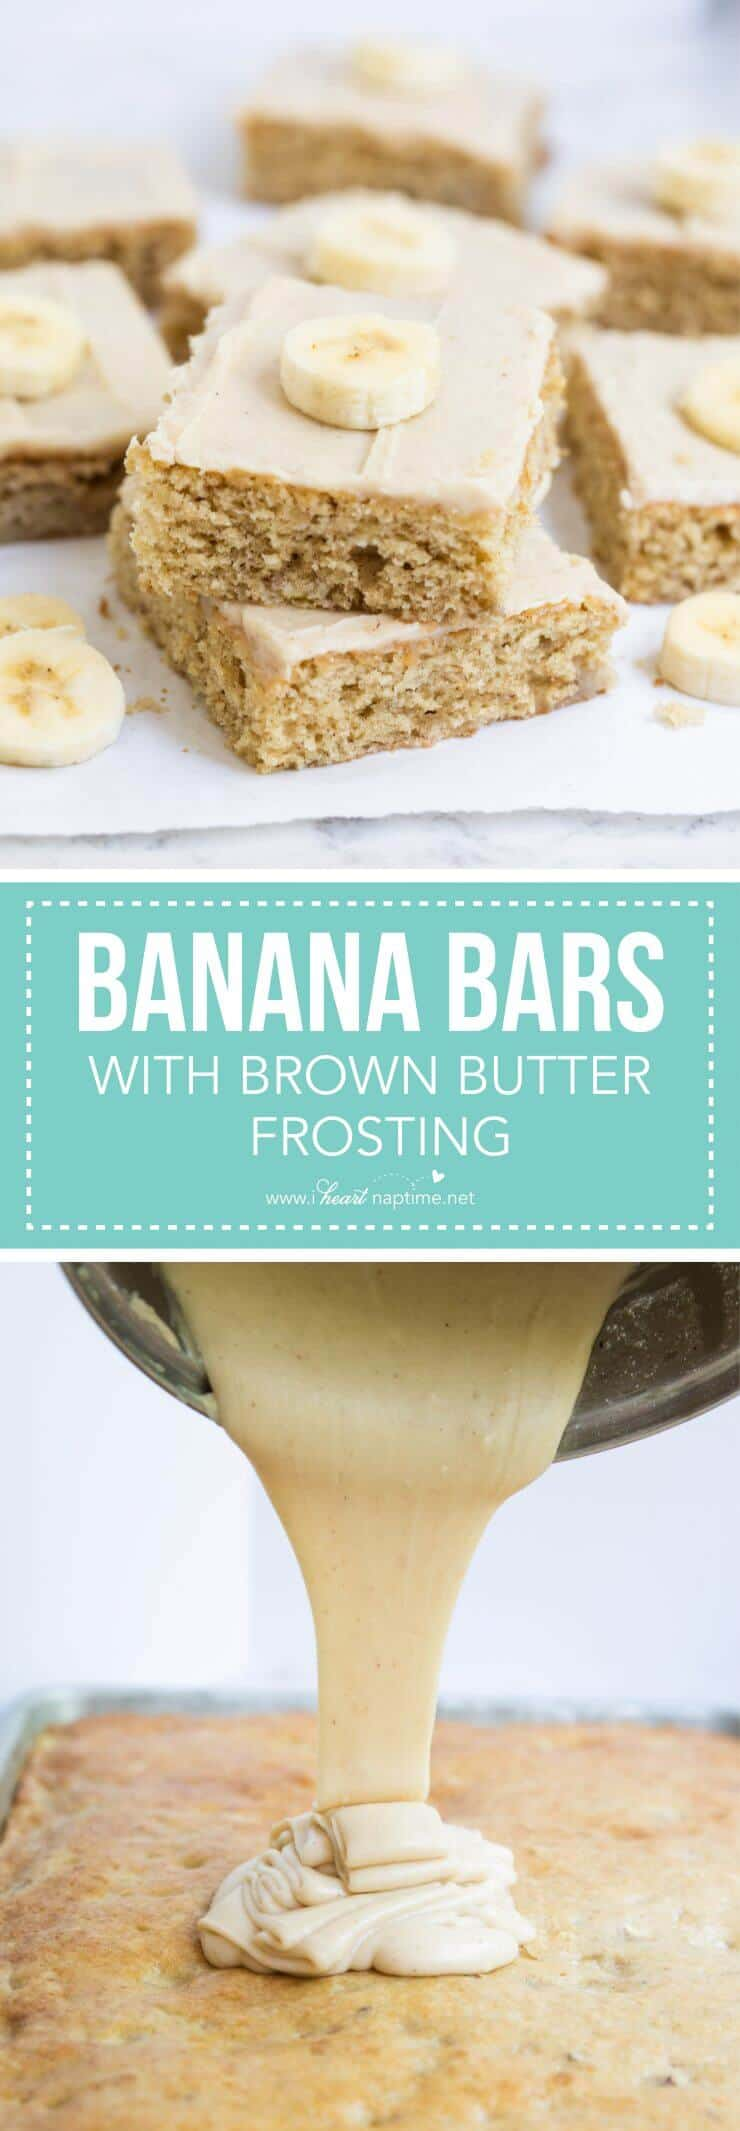 Banana bars with brown butter frosting -the best way to use ripe bananas! These bars are super soft and are always a hit at potlucks. They never last long!